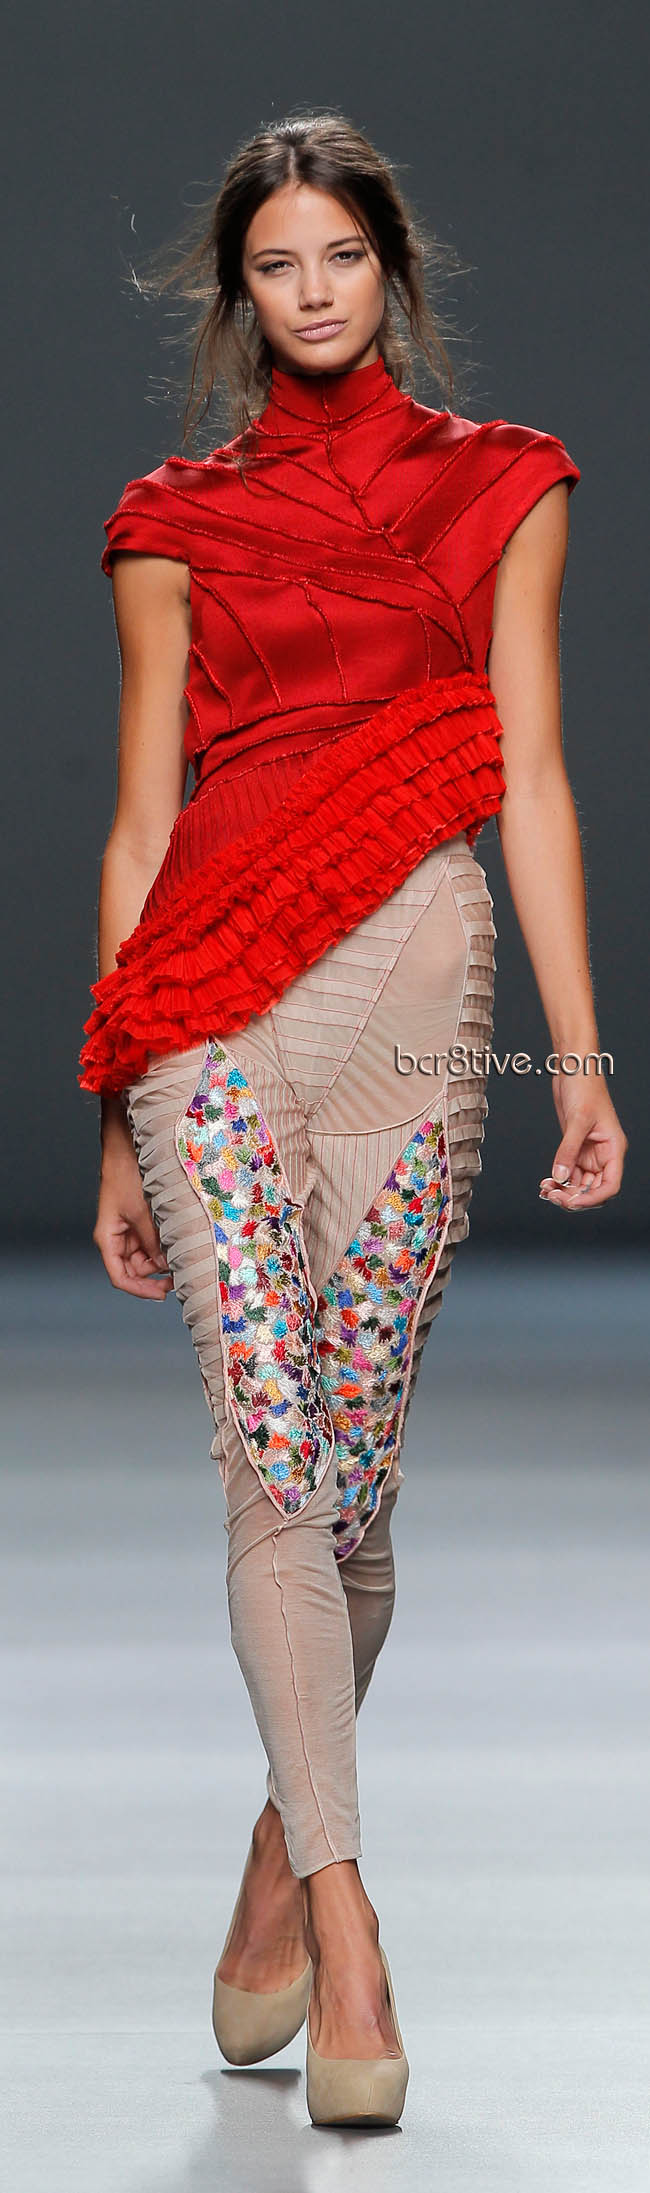 Ana Balboa Spring Summer 2012 Mercedes-Benz Fashion Week Madrid